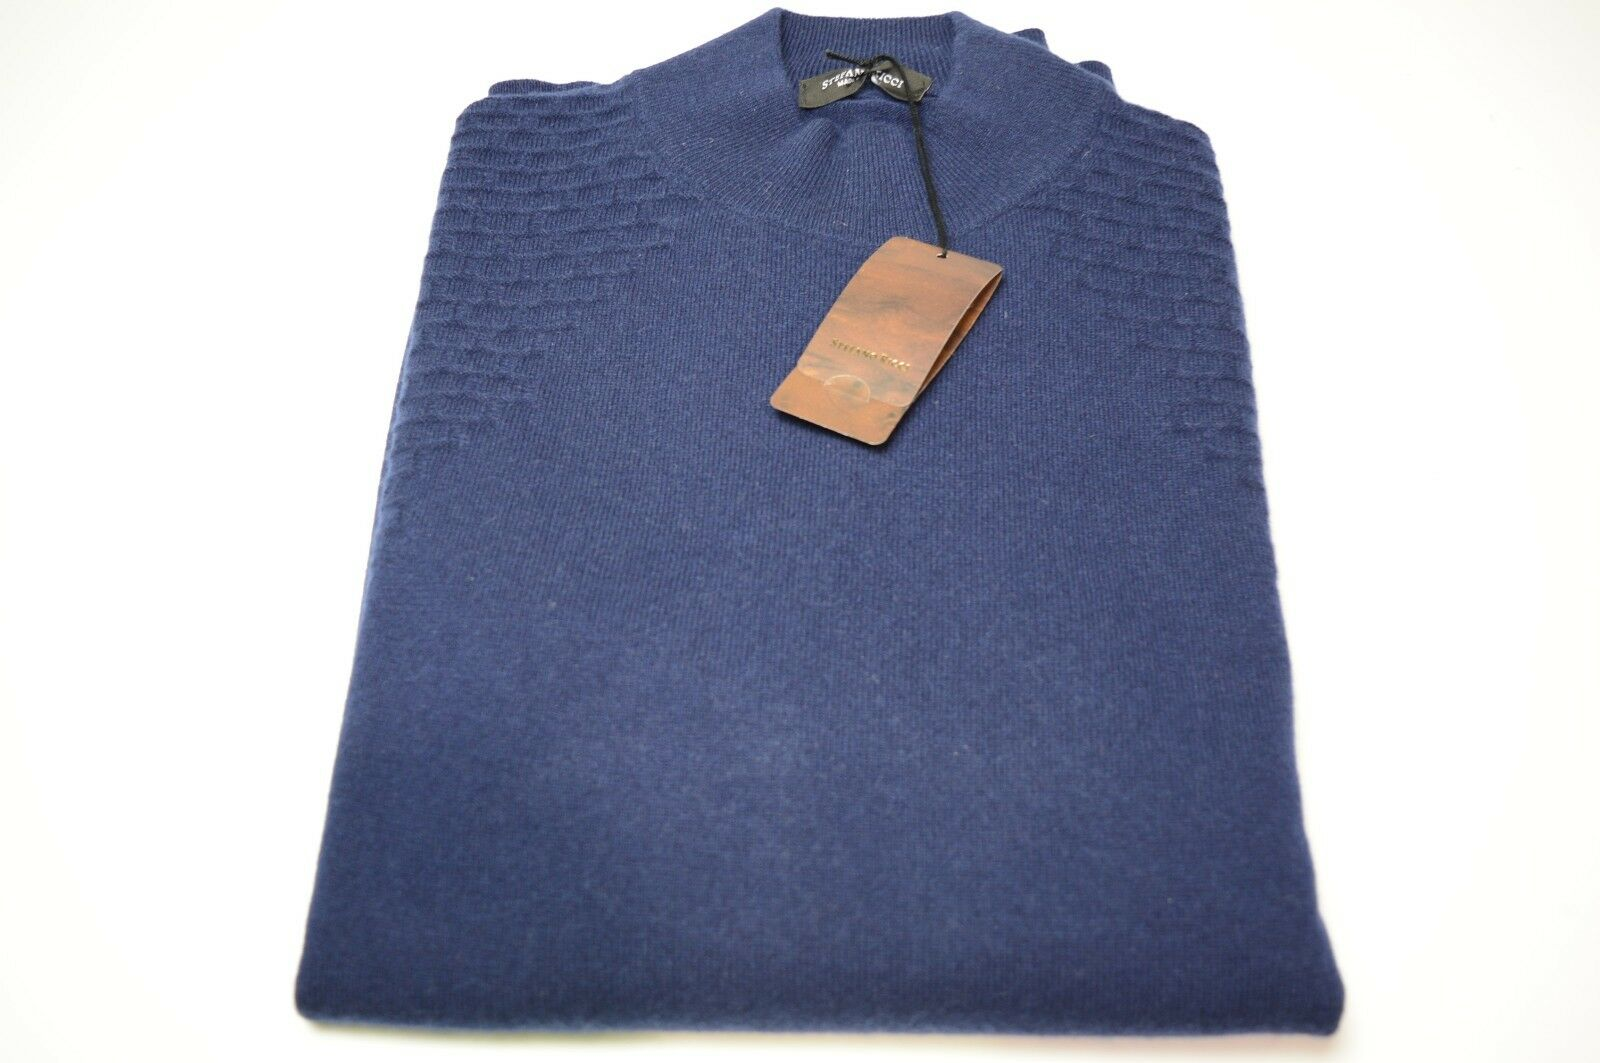 NEW $ 1650,00 STEFANO RICCI Sweater  Cashmere  Size 3XL Us 58 Eu (COD 606)